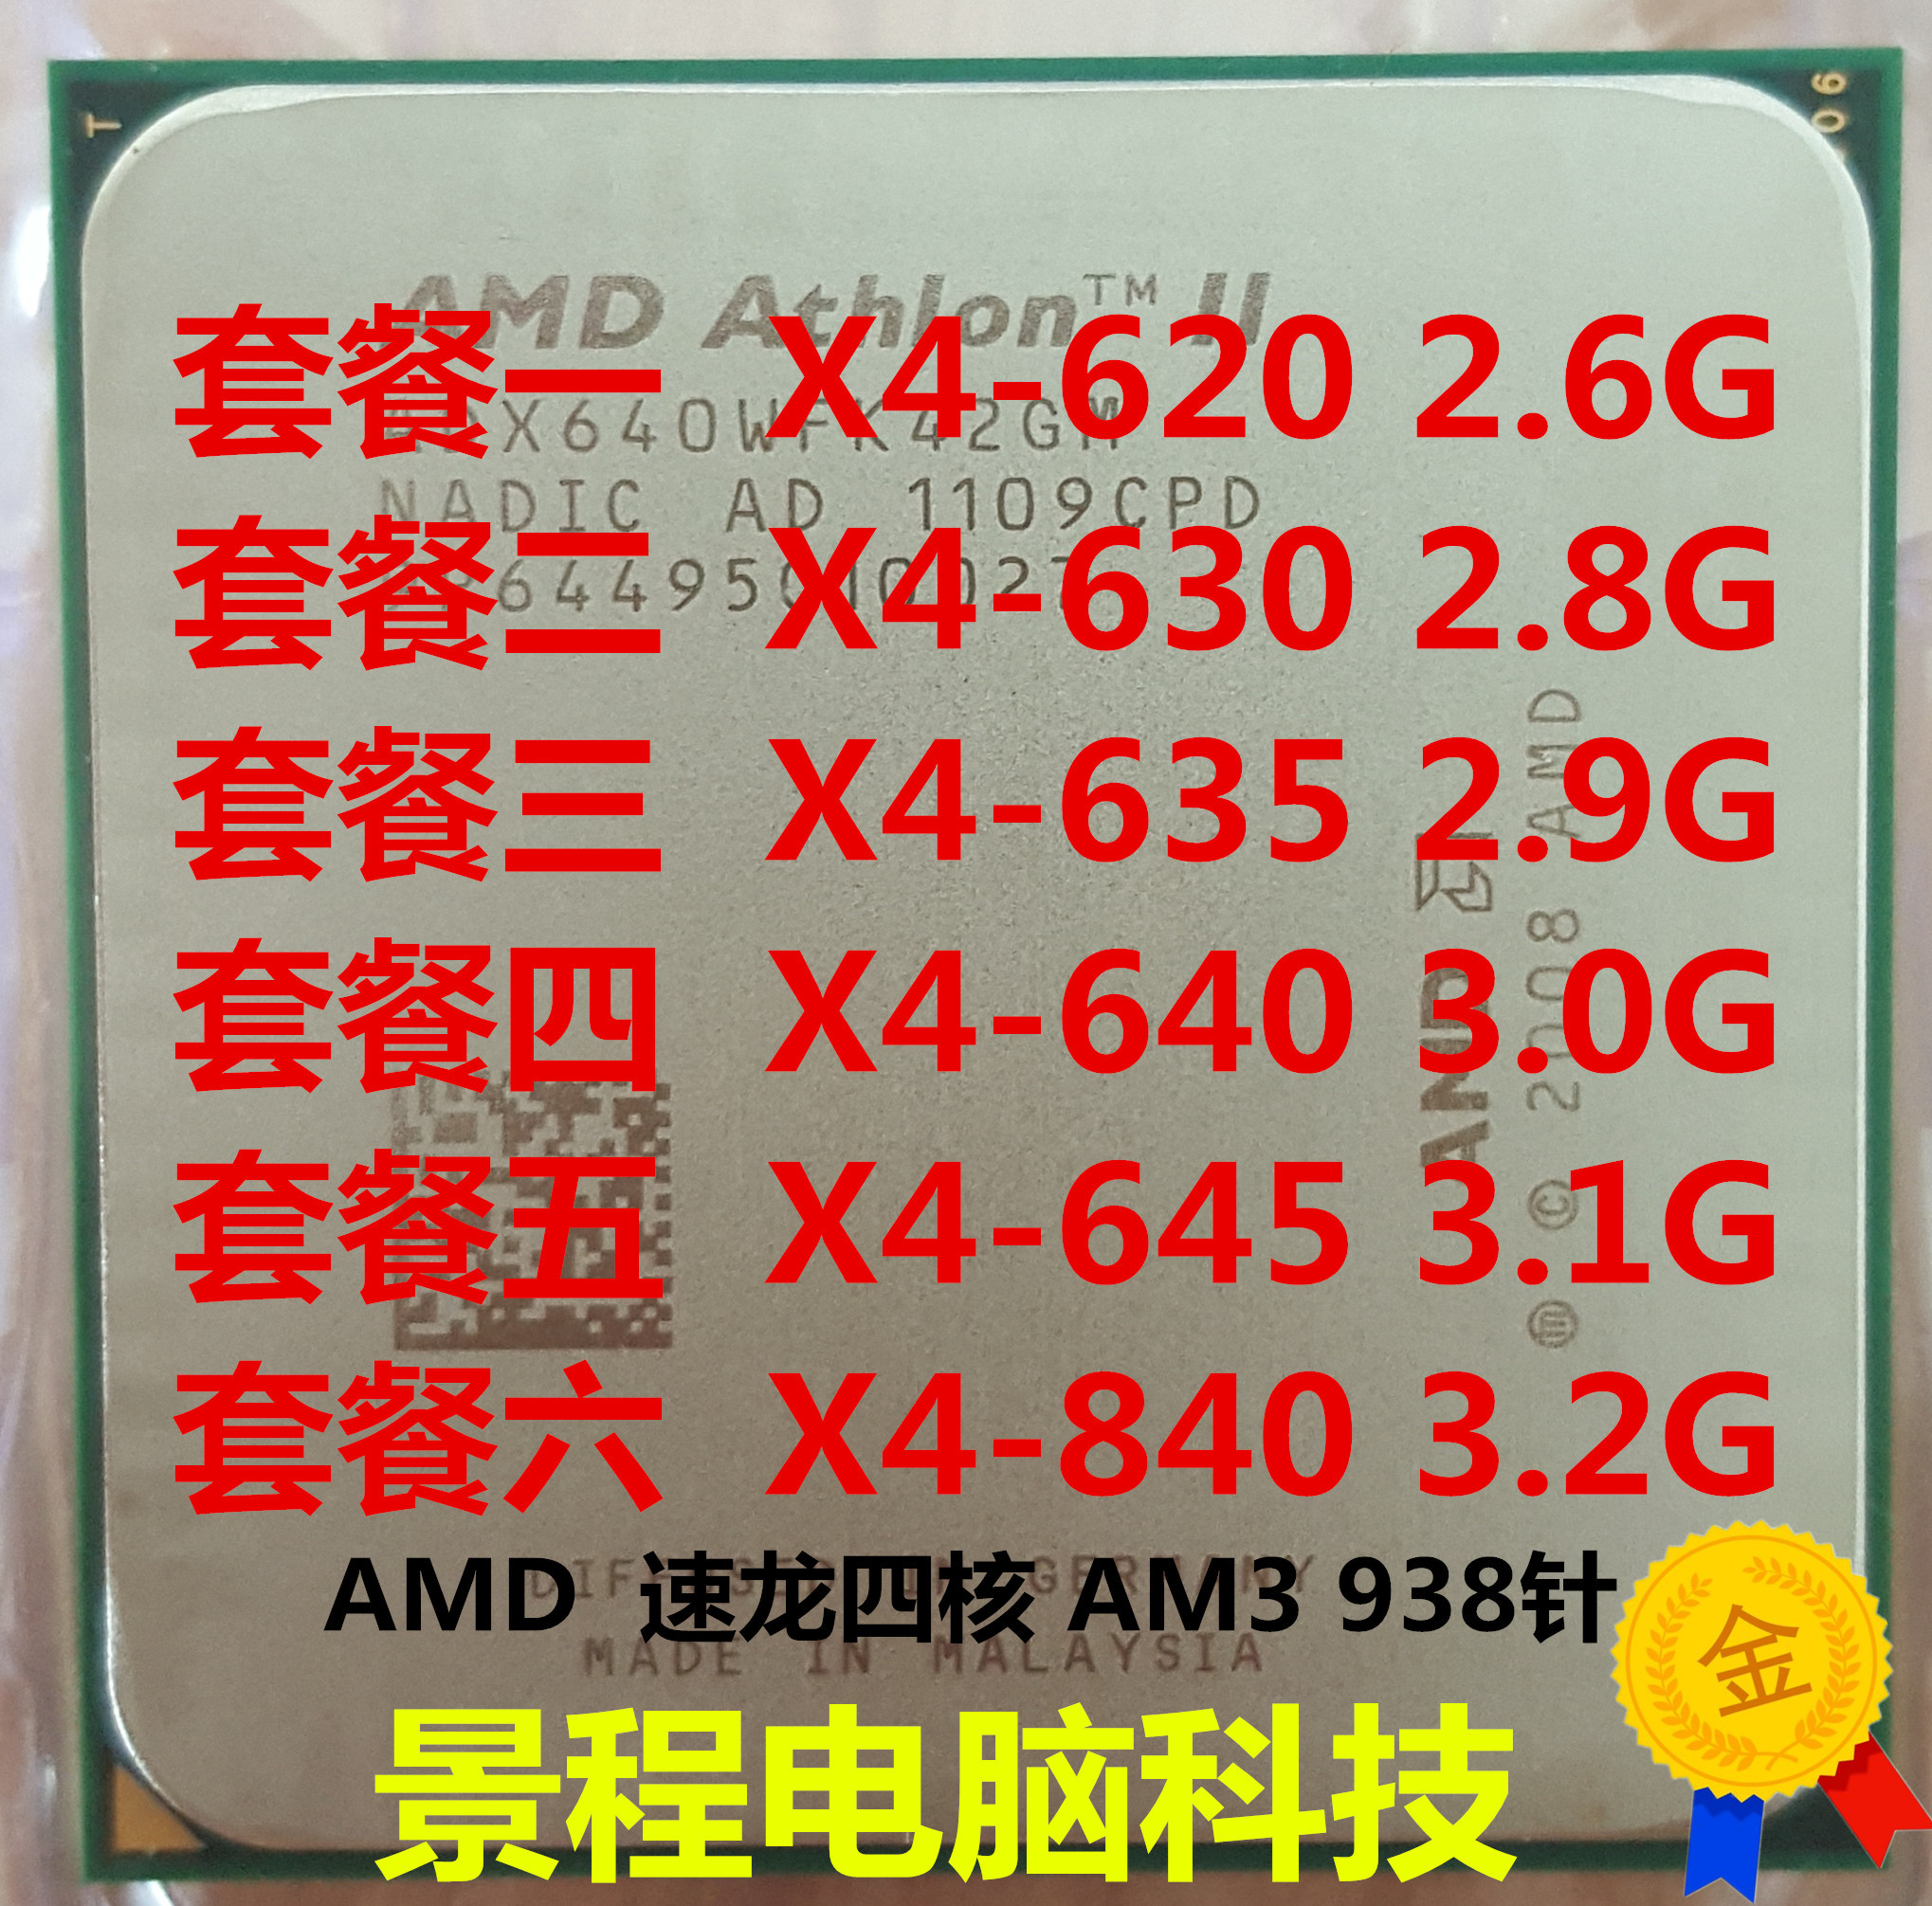 AMD Athlon II X4 640 620 630 635 速龙 四核CPU 3.0G AM3 938针